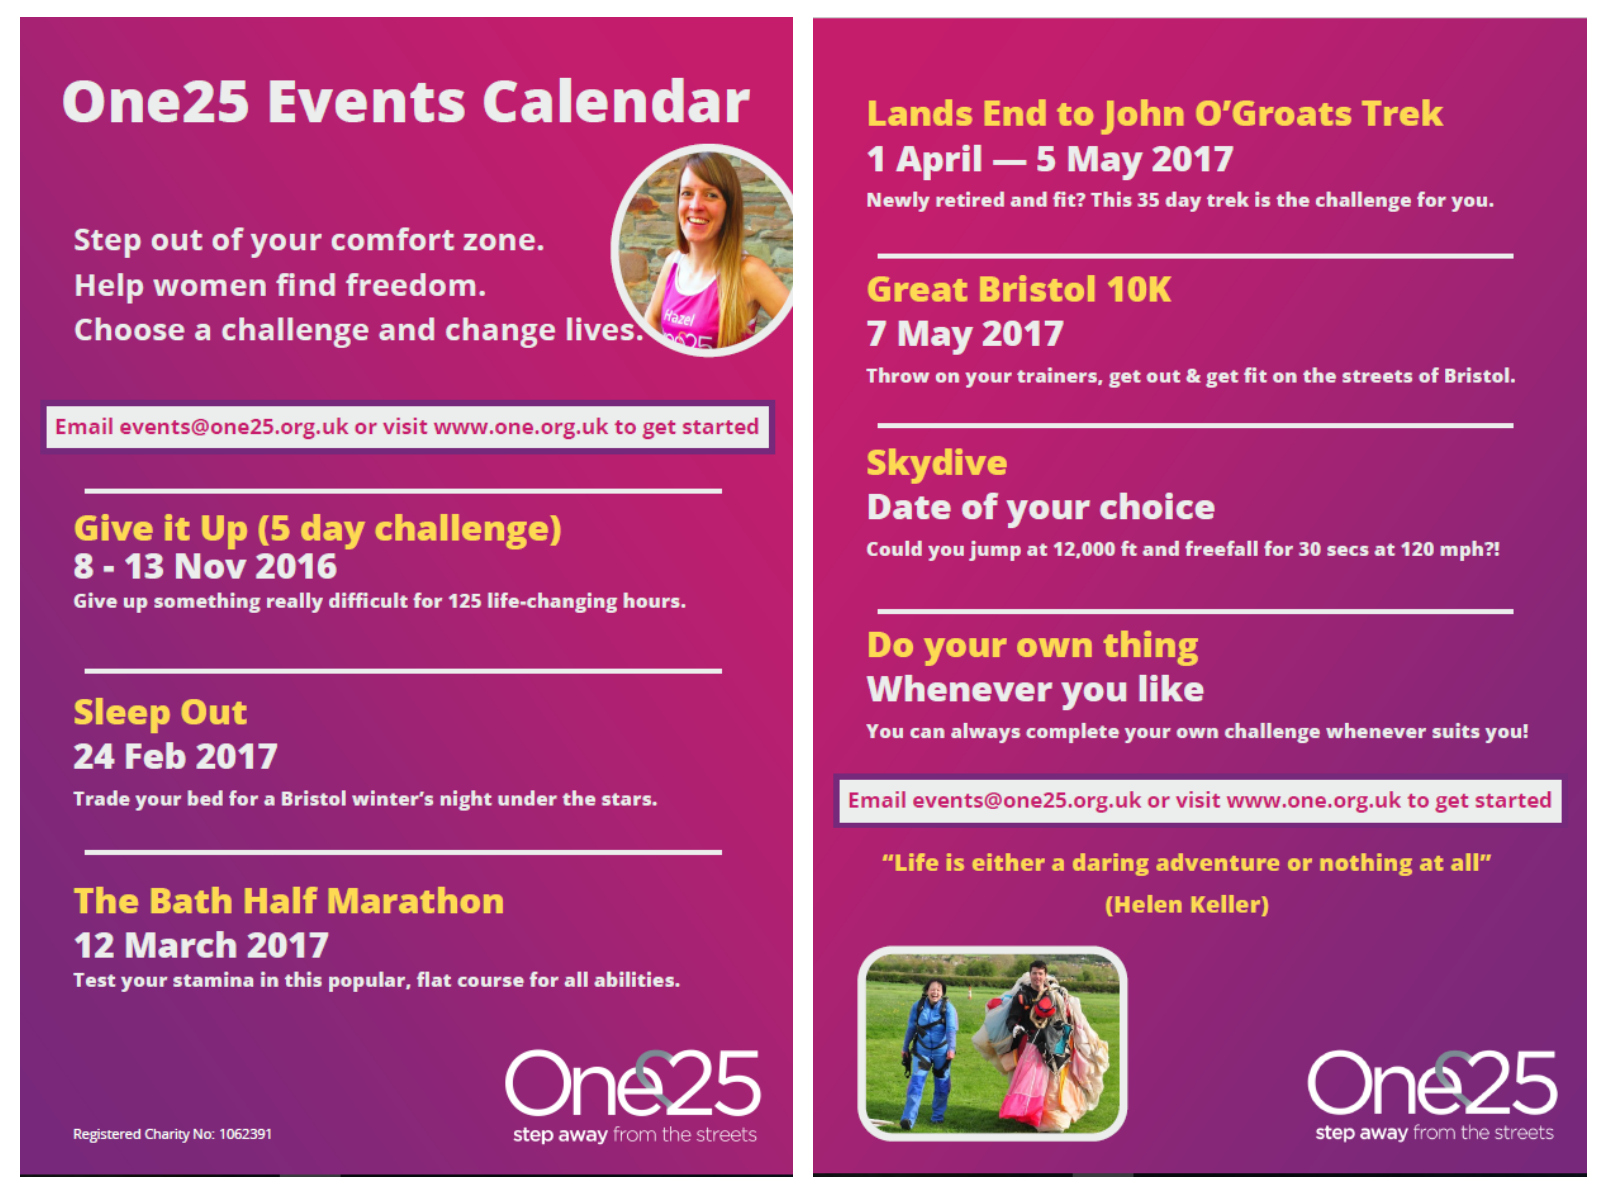 One25 events calendar